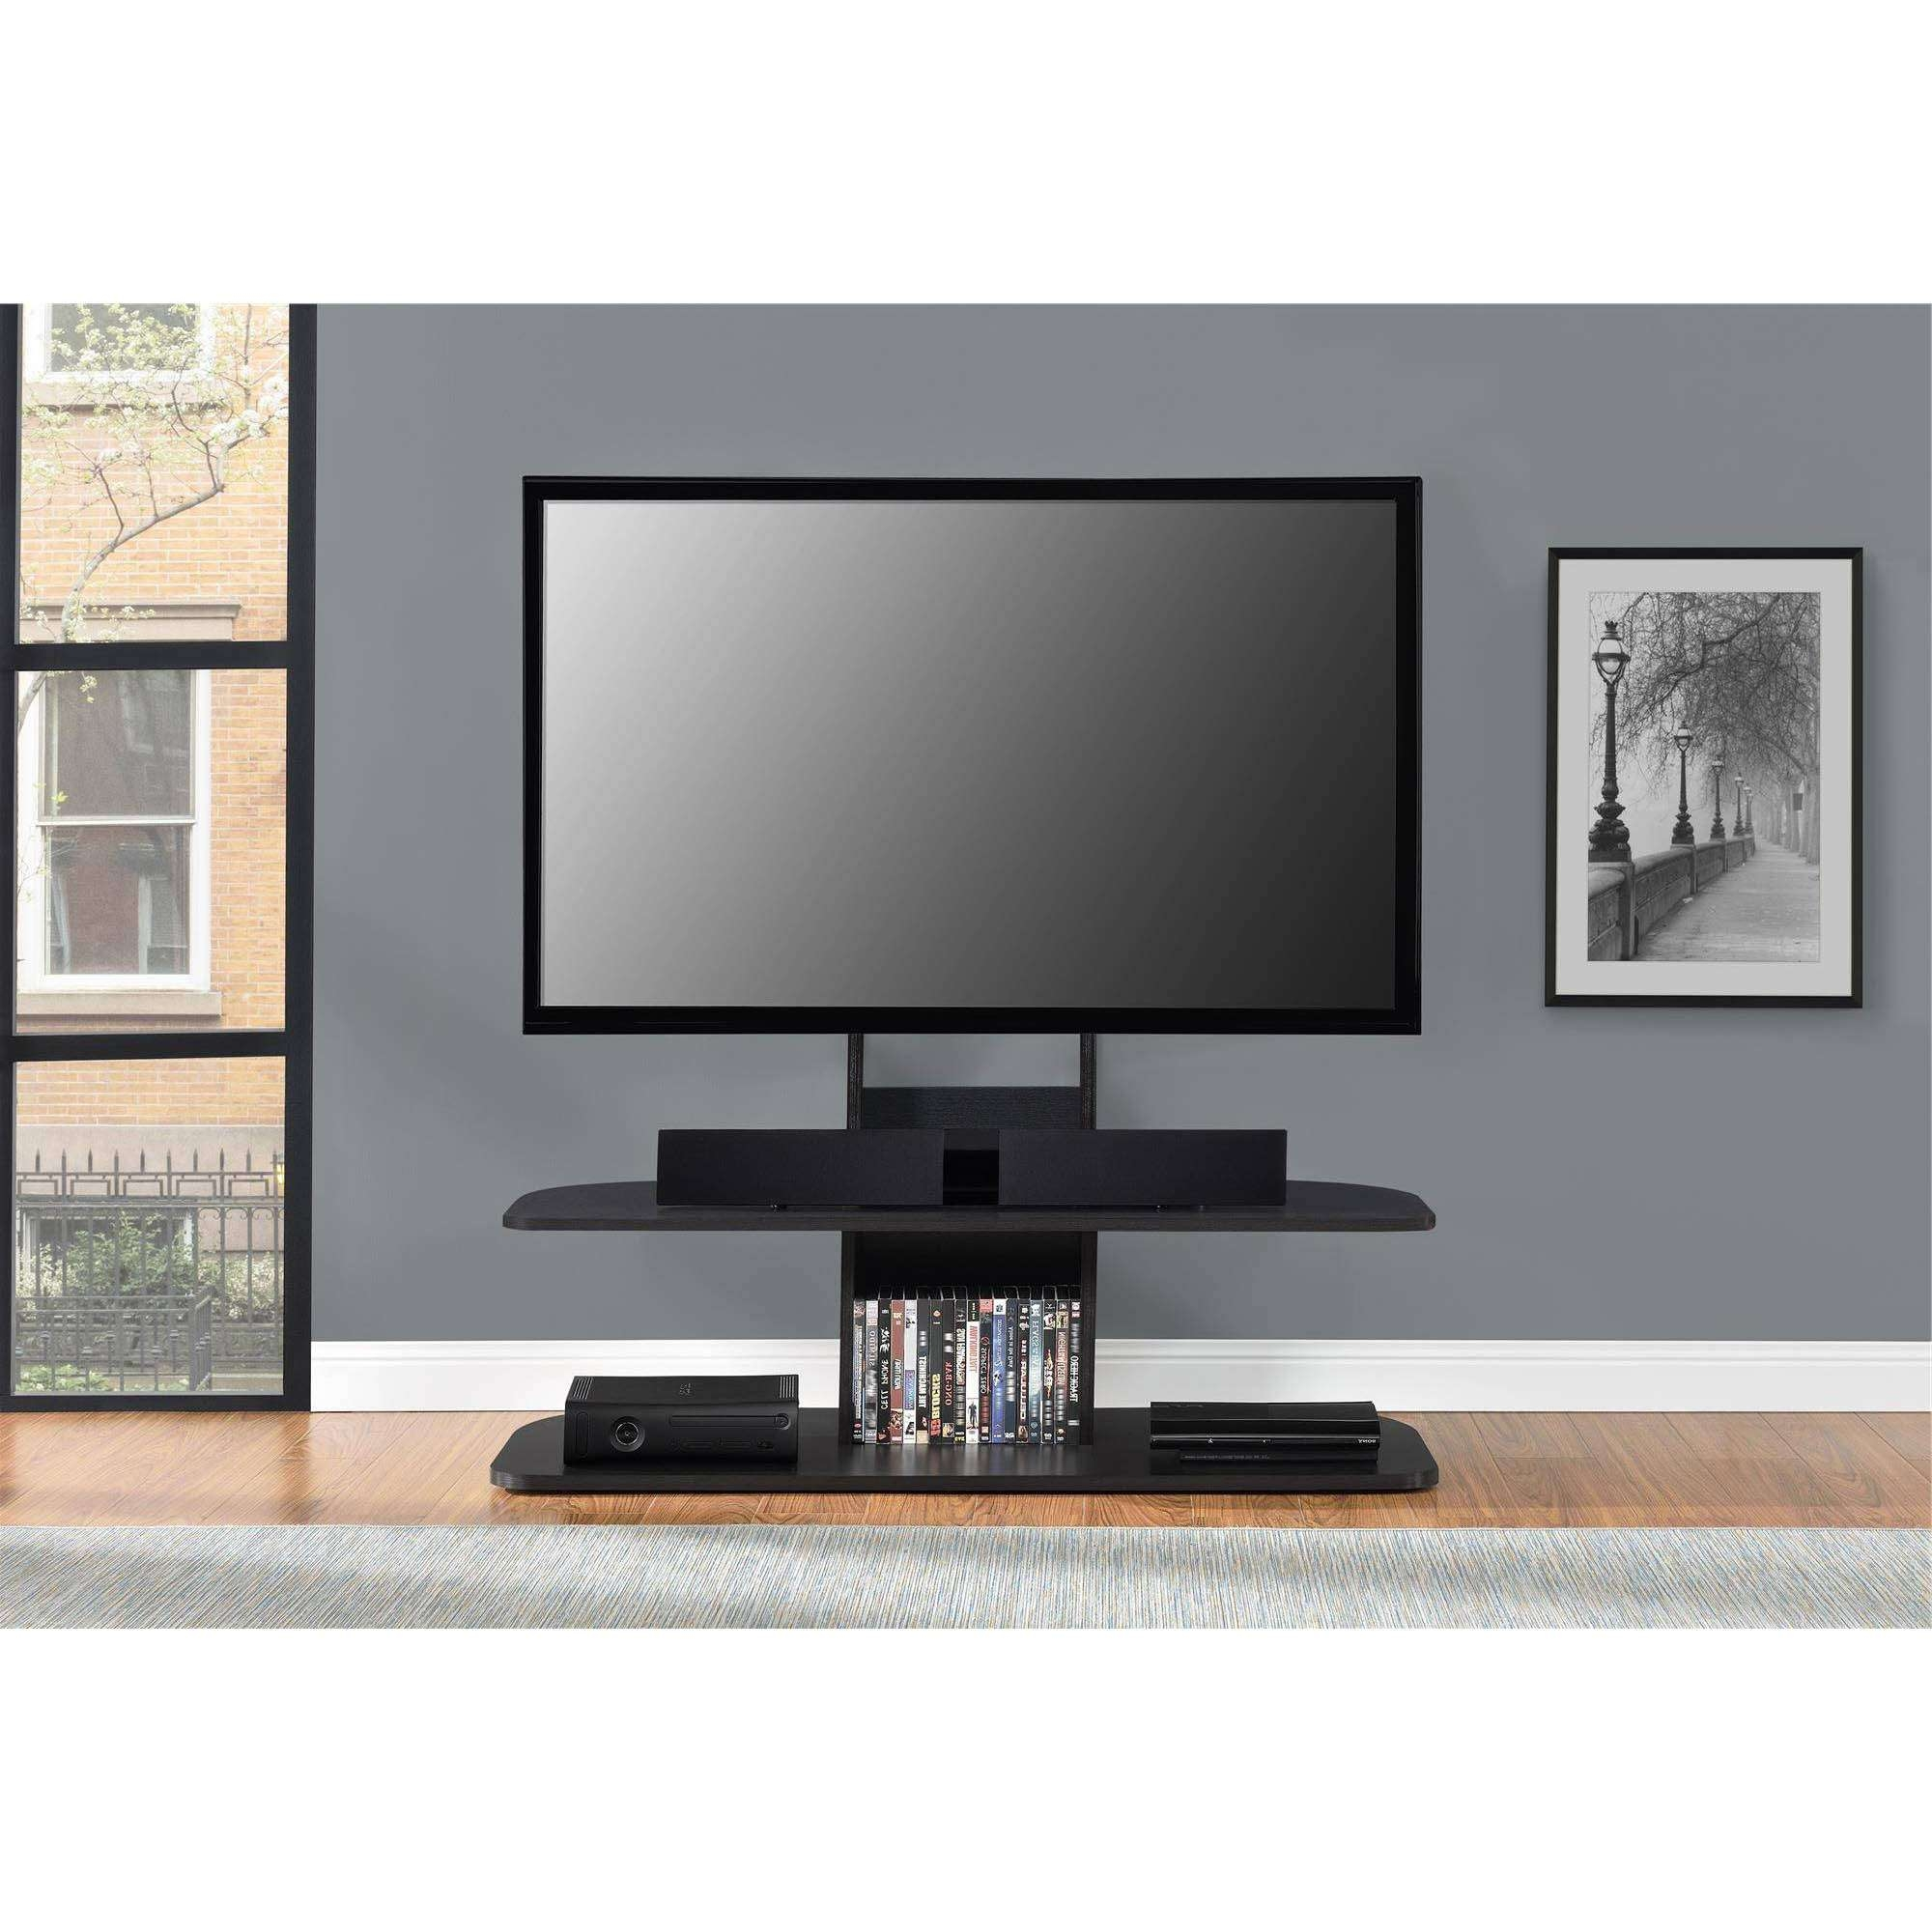 Tv Stands & Entertainment Centers – Walmart With Regard To Modern Tv Stands For 60 Inch Tvs (View 15 of 15)